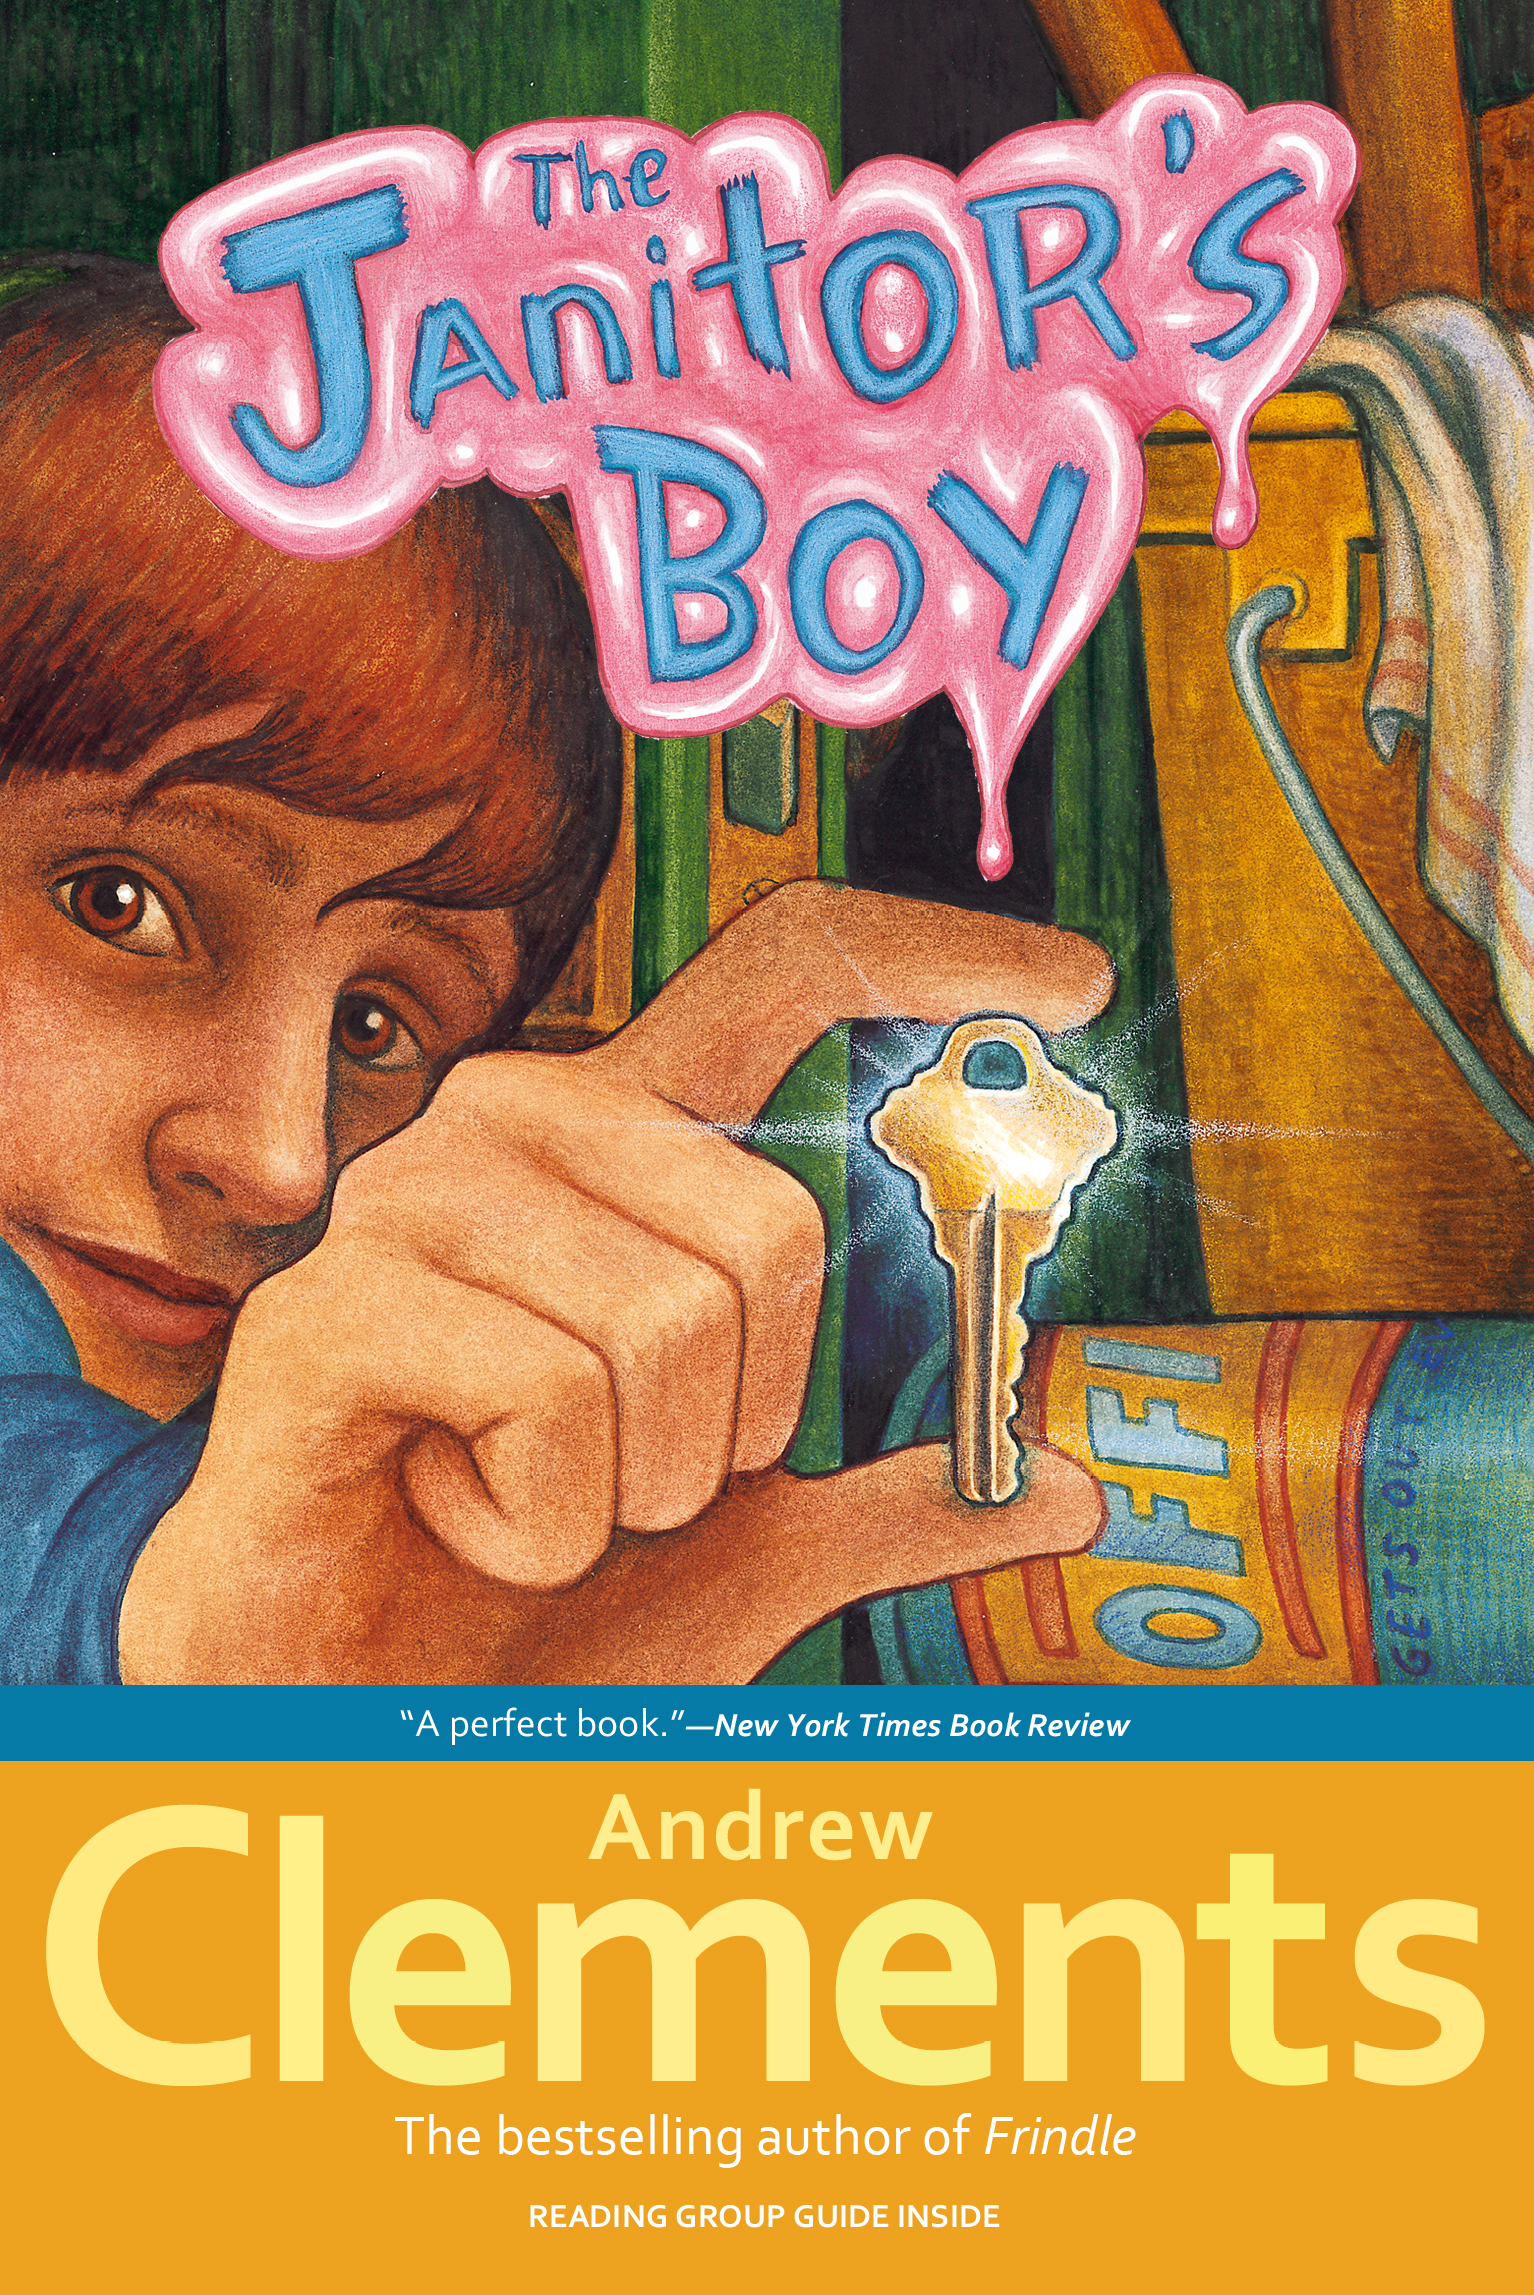 andrew-clements-janitors-boy.jpg